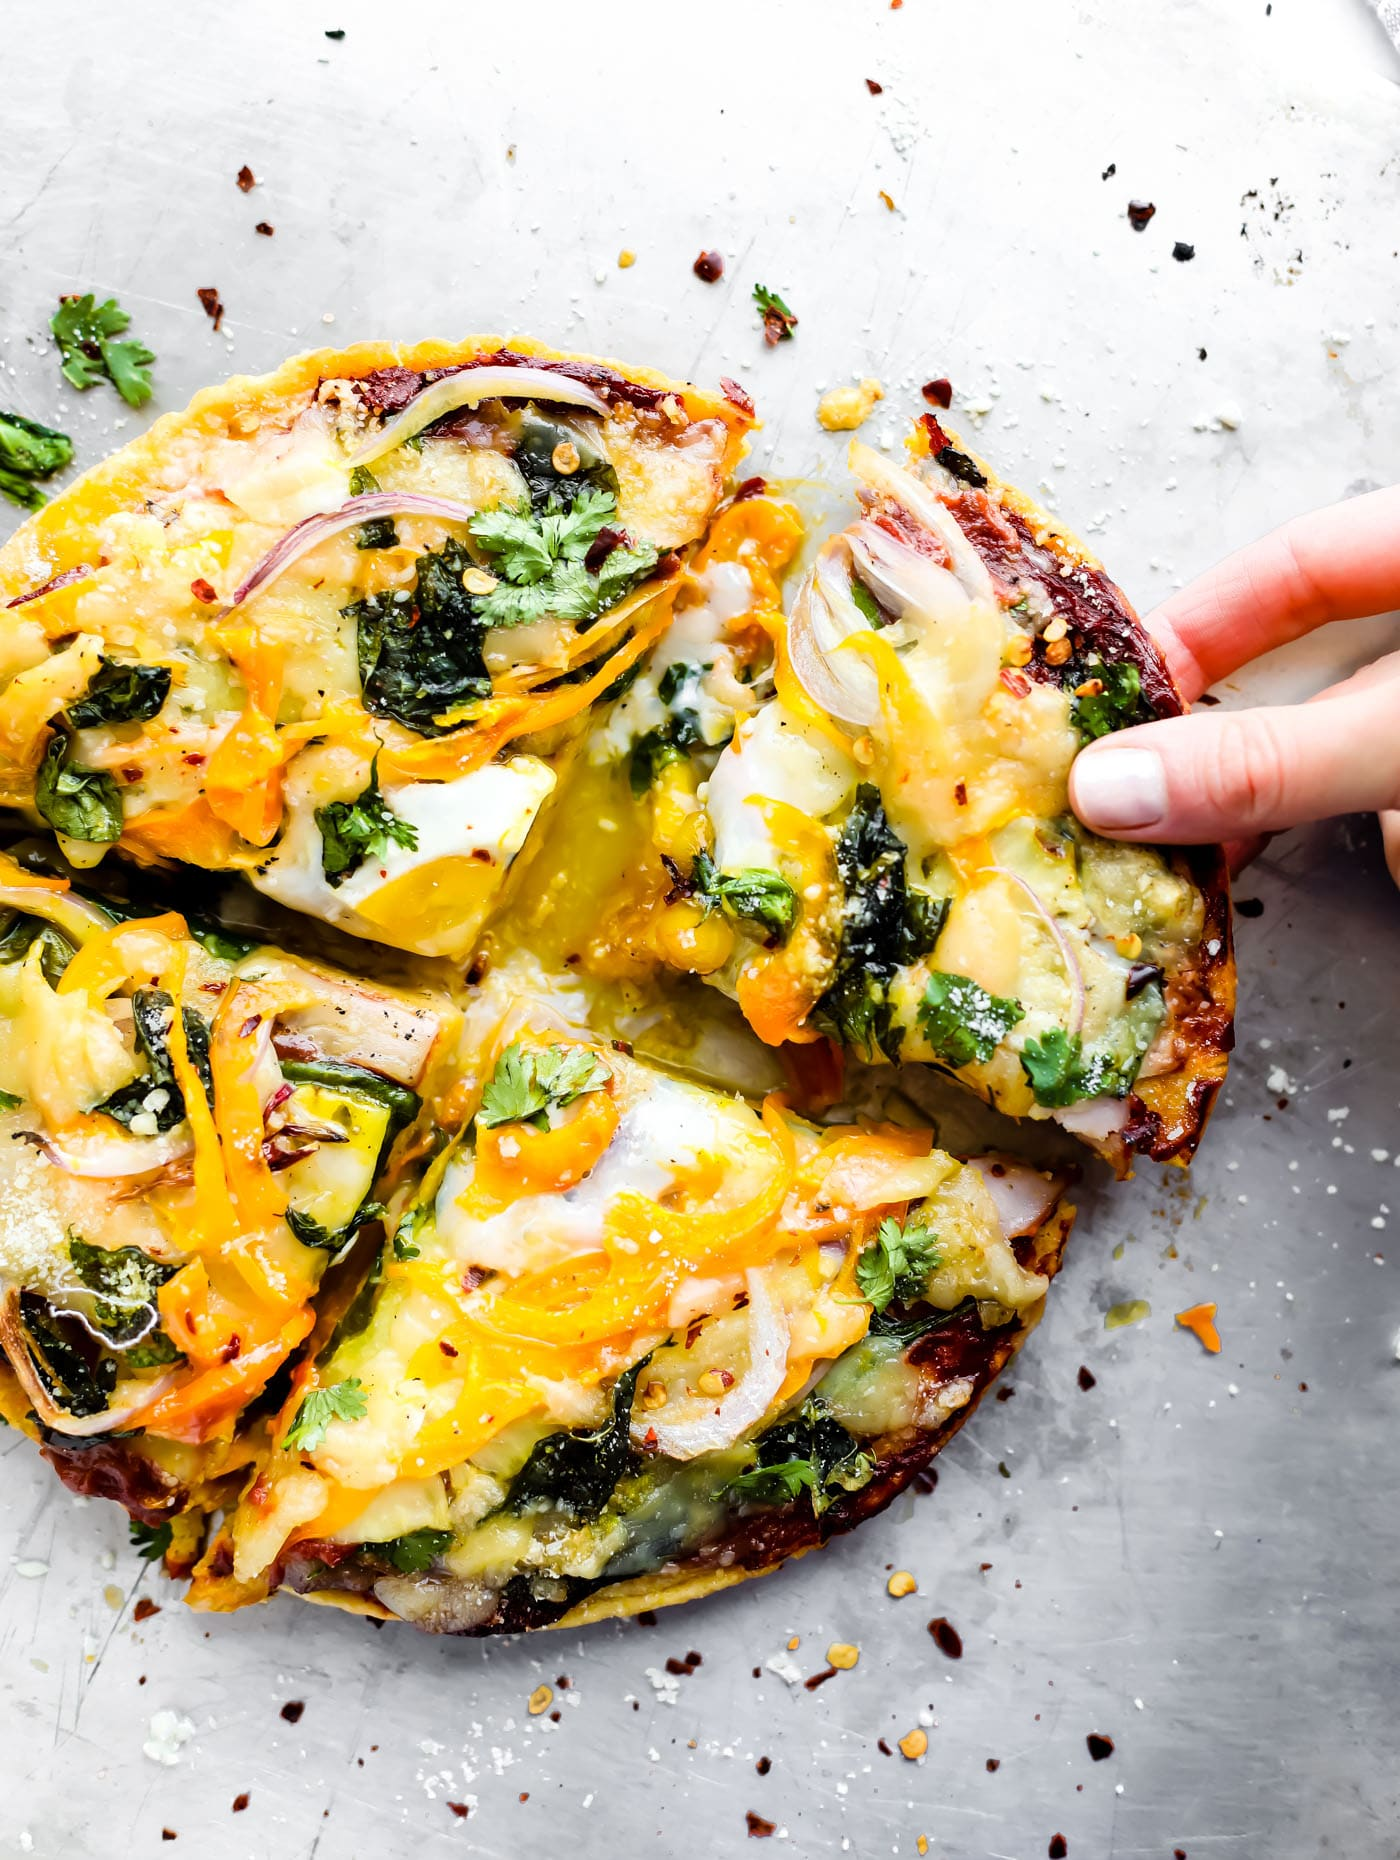 Abreakfast pizzarecipeyou can make for any meal! Socca pizza crust made from just 3 ingredients, sliced pineapple, uncured bacon, egg, onion, and creamy meltable artisan cheese! A breakfast pizza that's quick to make, grain free, and deliciously nutritious. You'll be hooked!